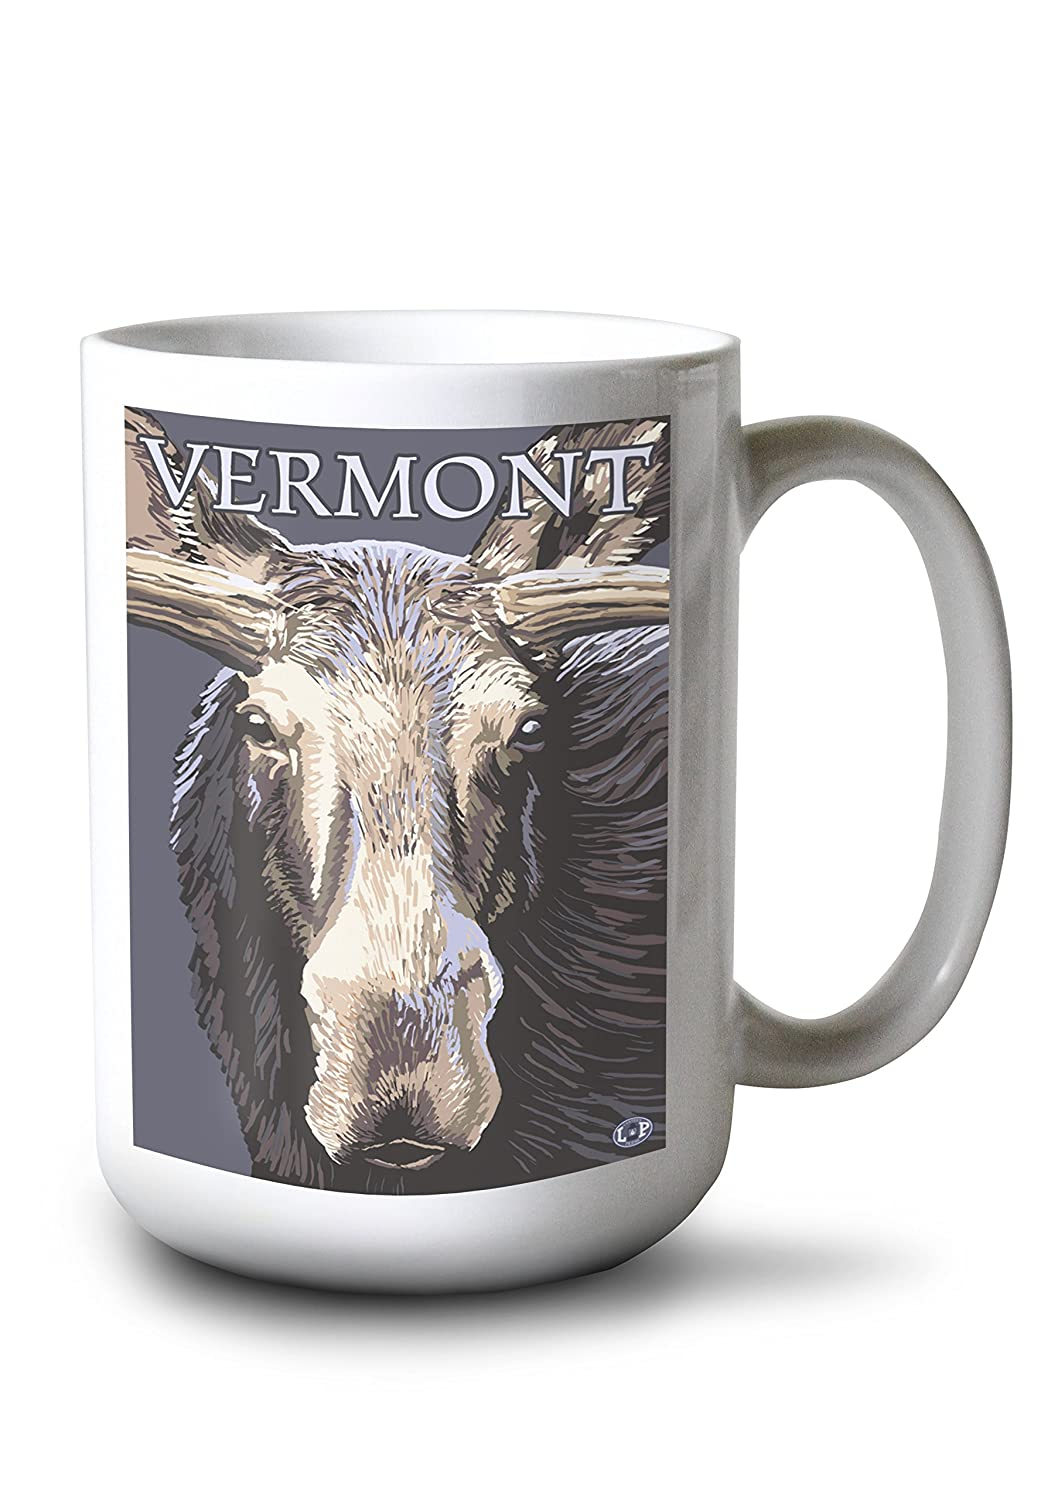 Vermont – Moose Up Close 15oz Mug LANT-3P-15OZ-WHT-19538 B077RVYLGN  15oz Mug